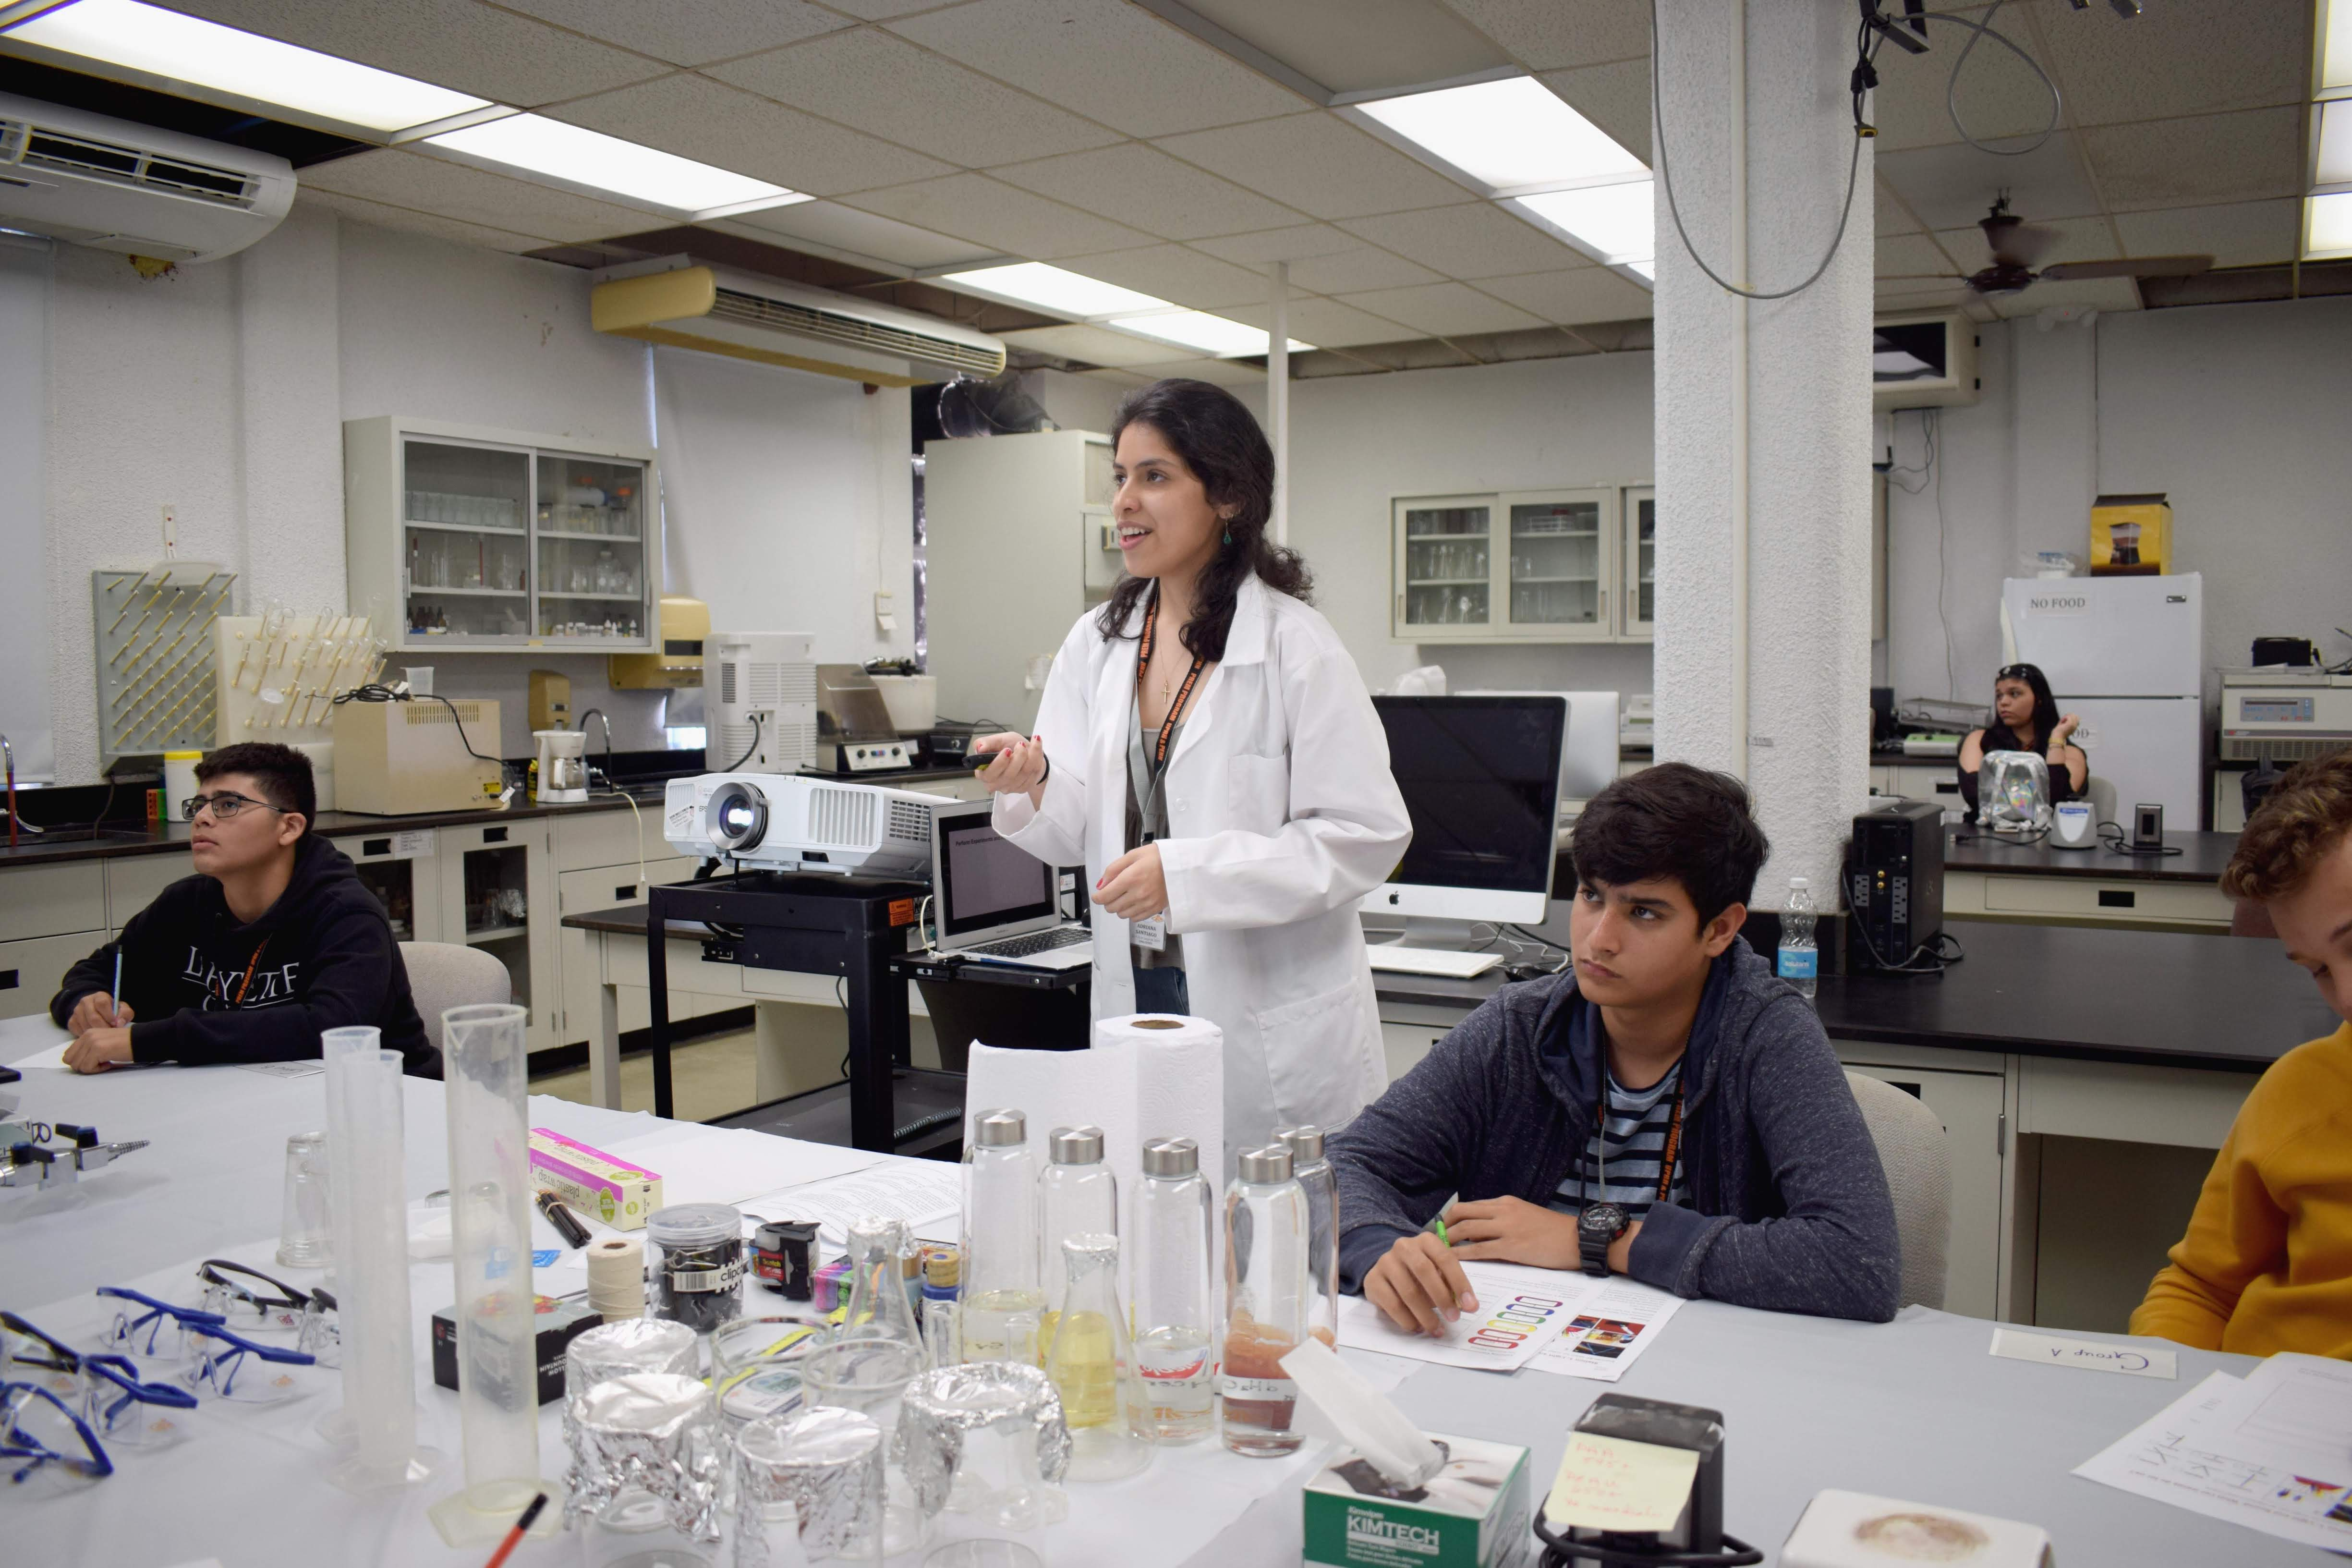 a person wearing a lab coat gives a lecture to students in a lab